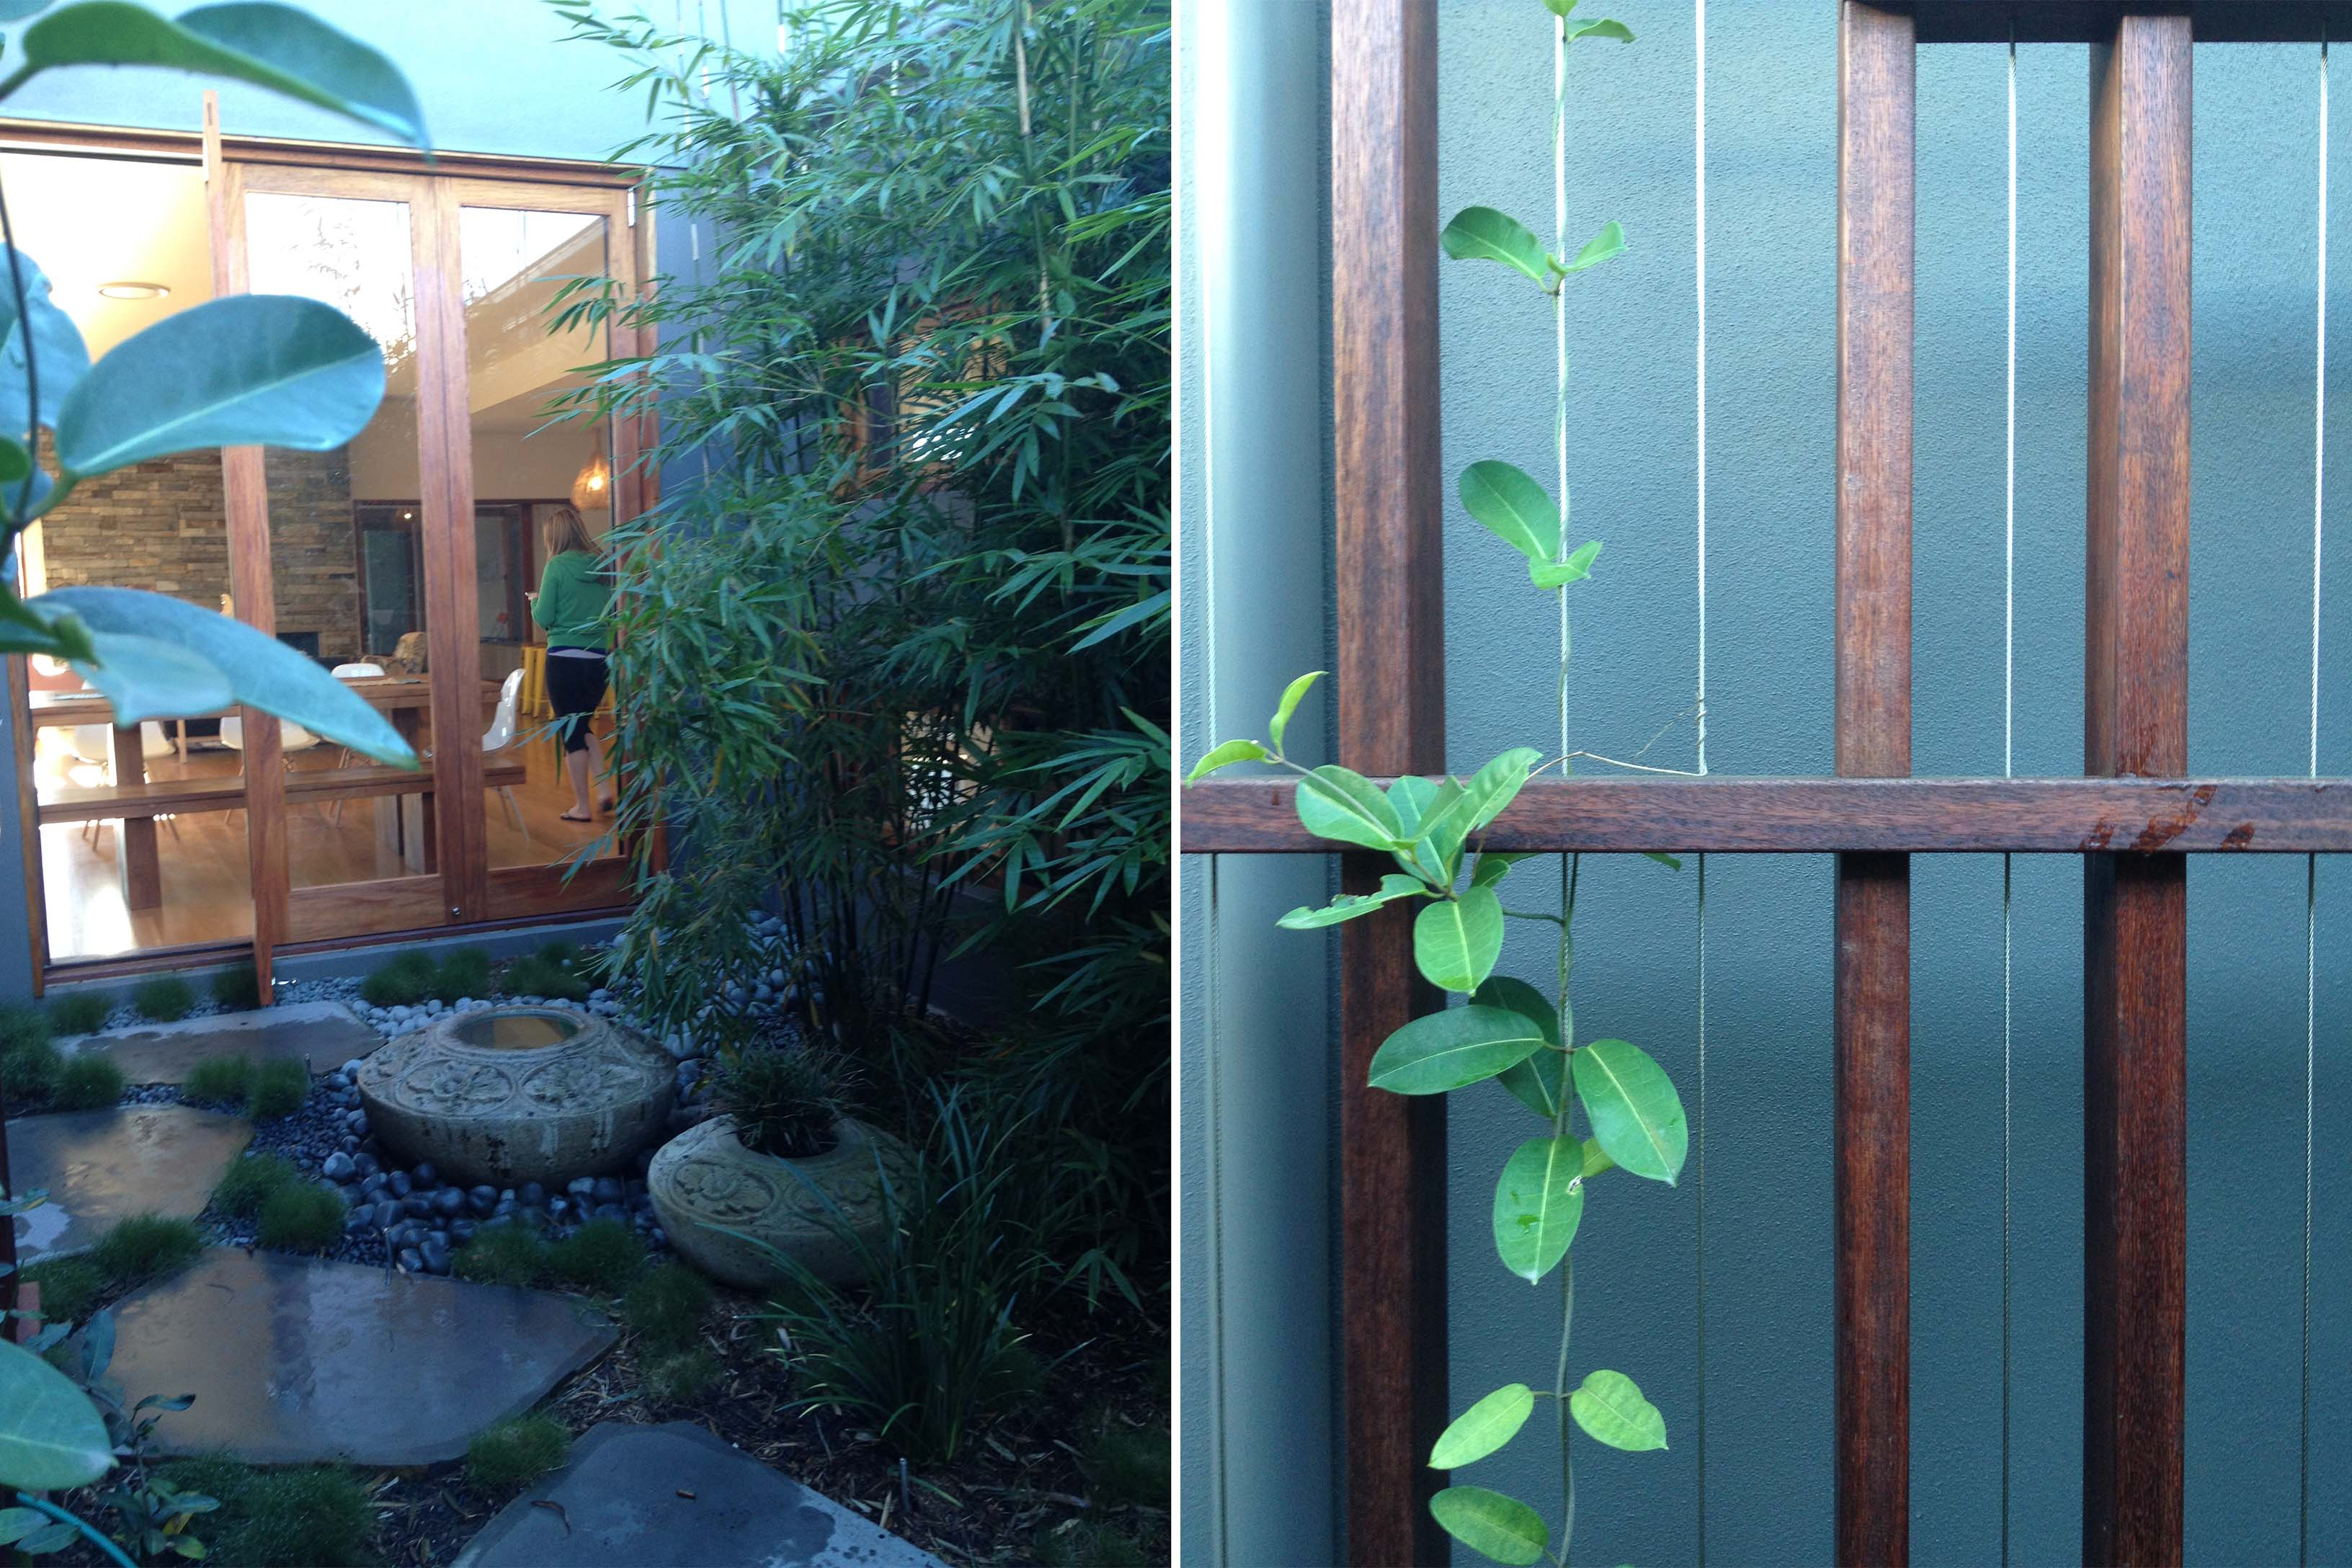 samford residence with water features, bamboo and custom trellis screening